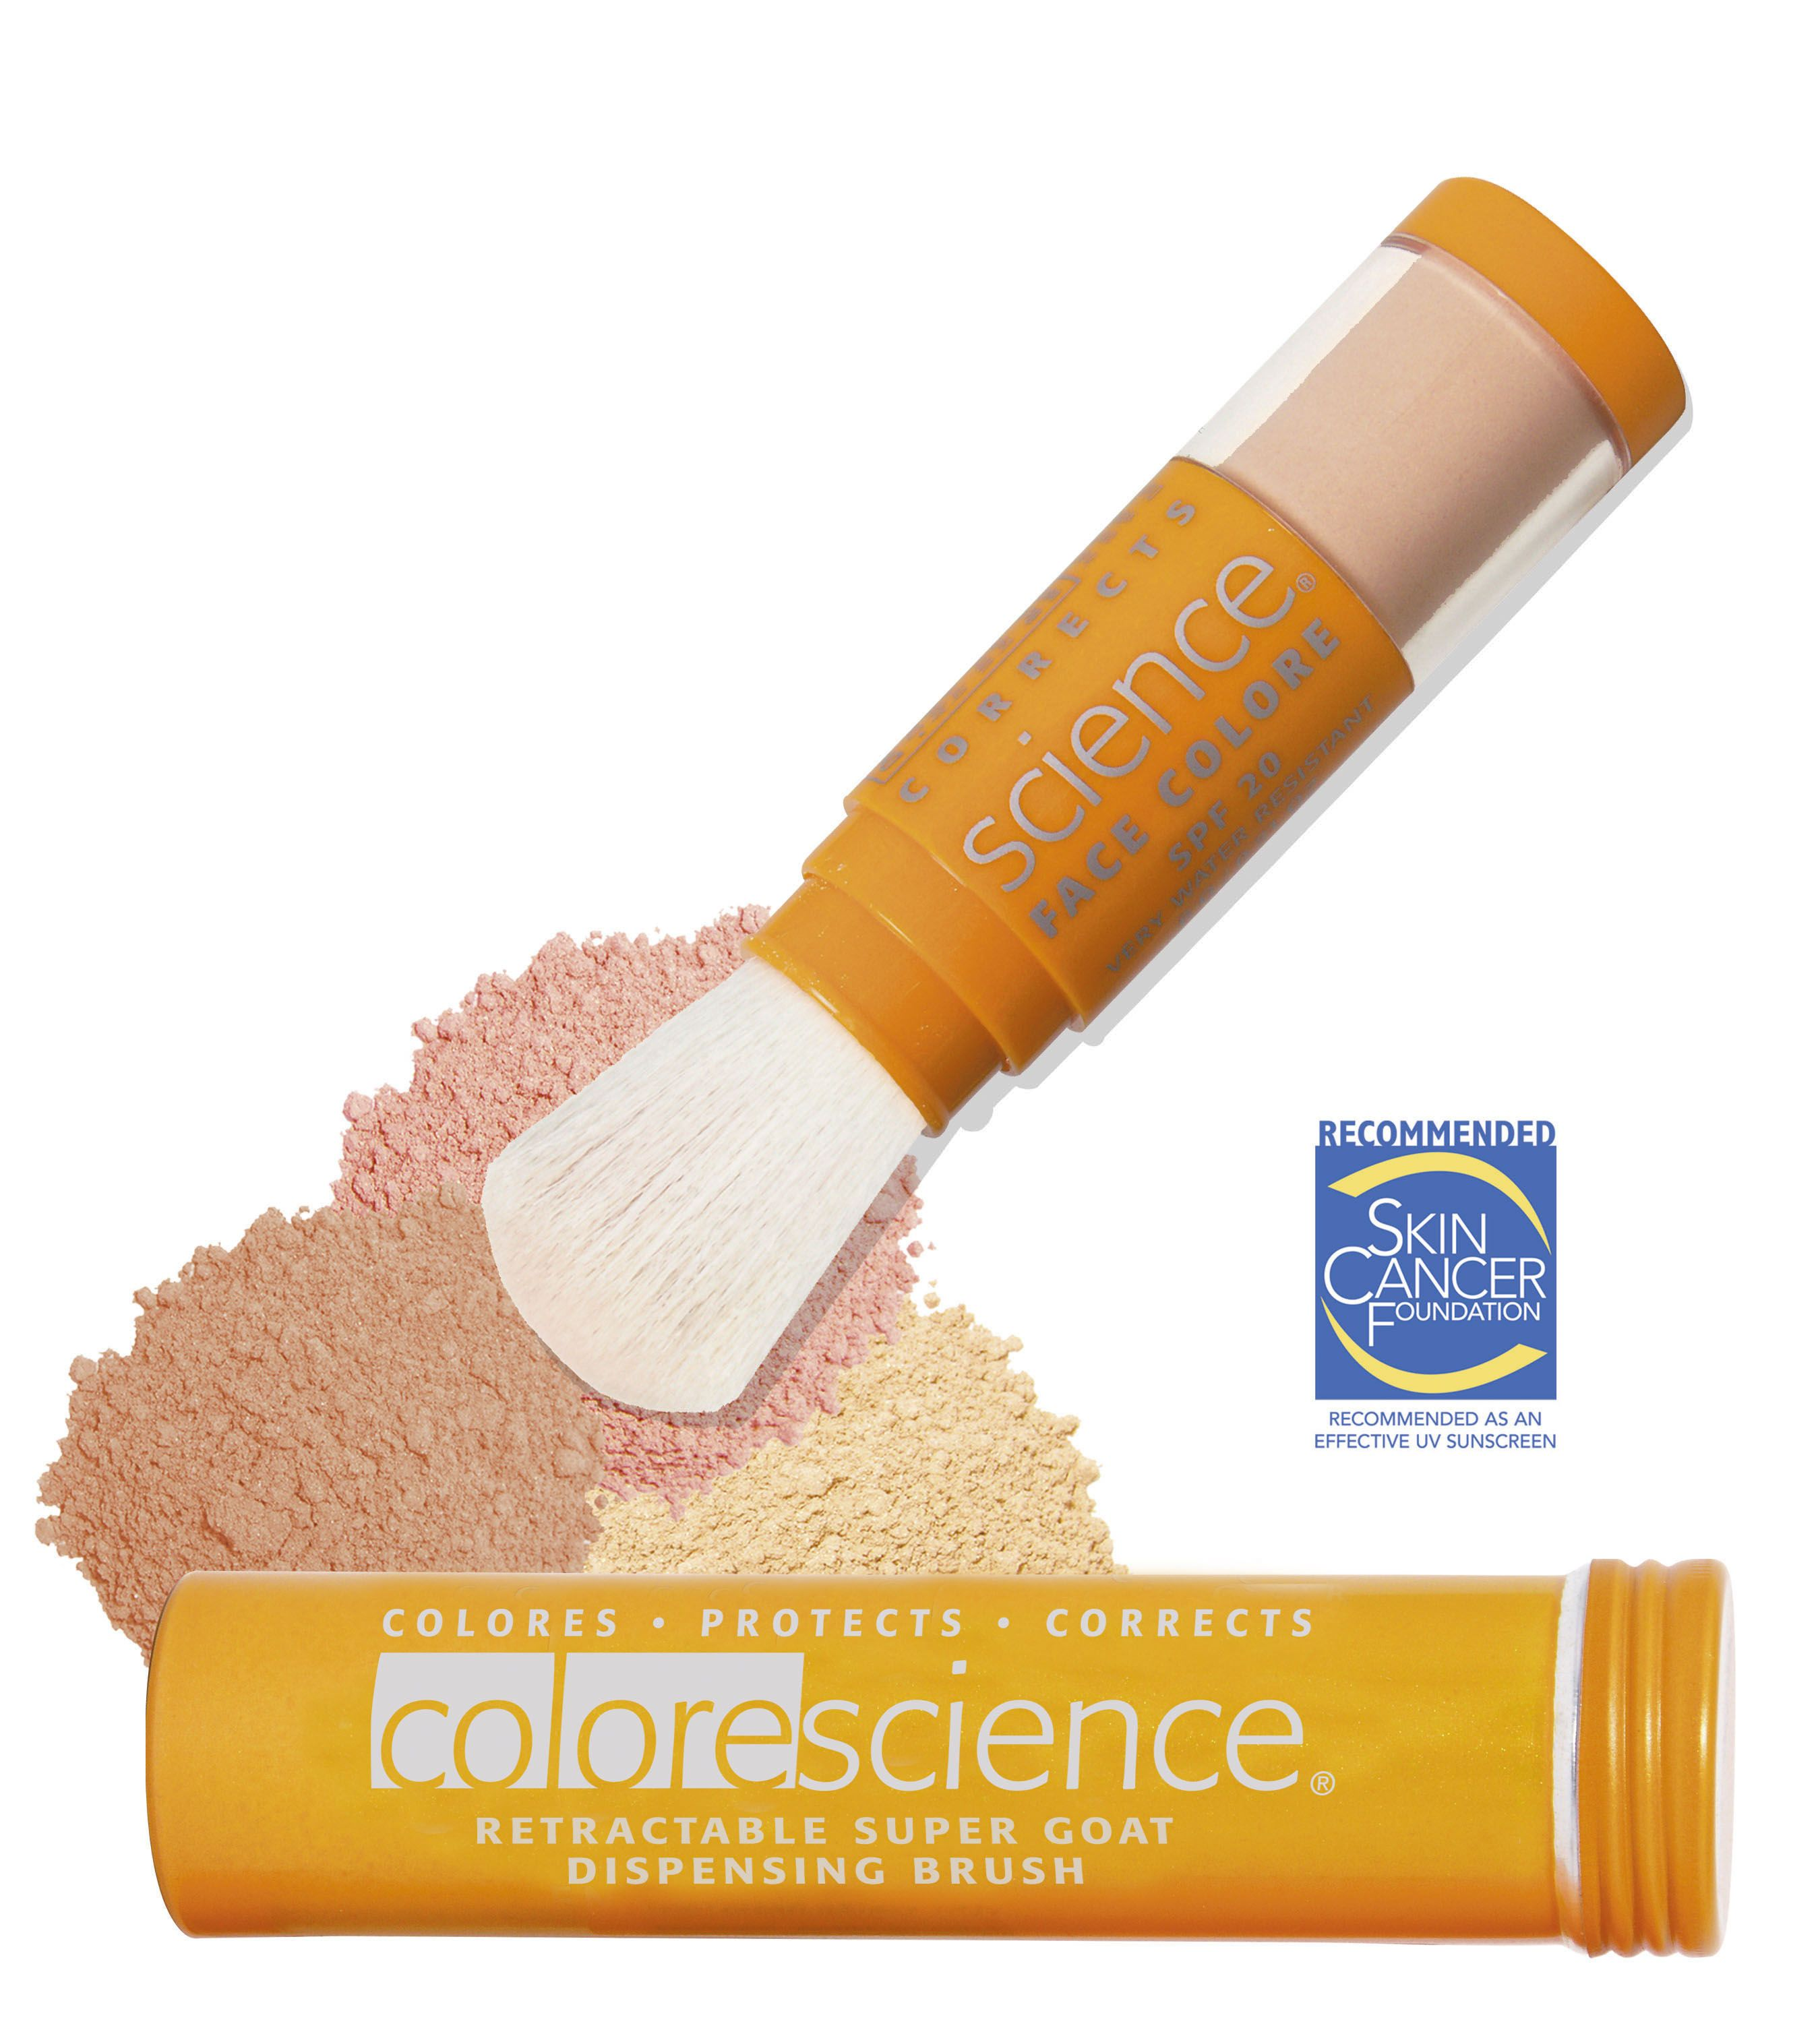 Colorescience Mineral Makeup is the best! Chemical peel